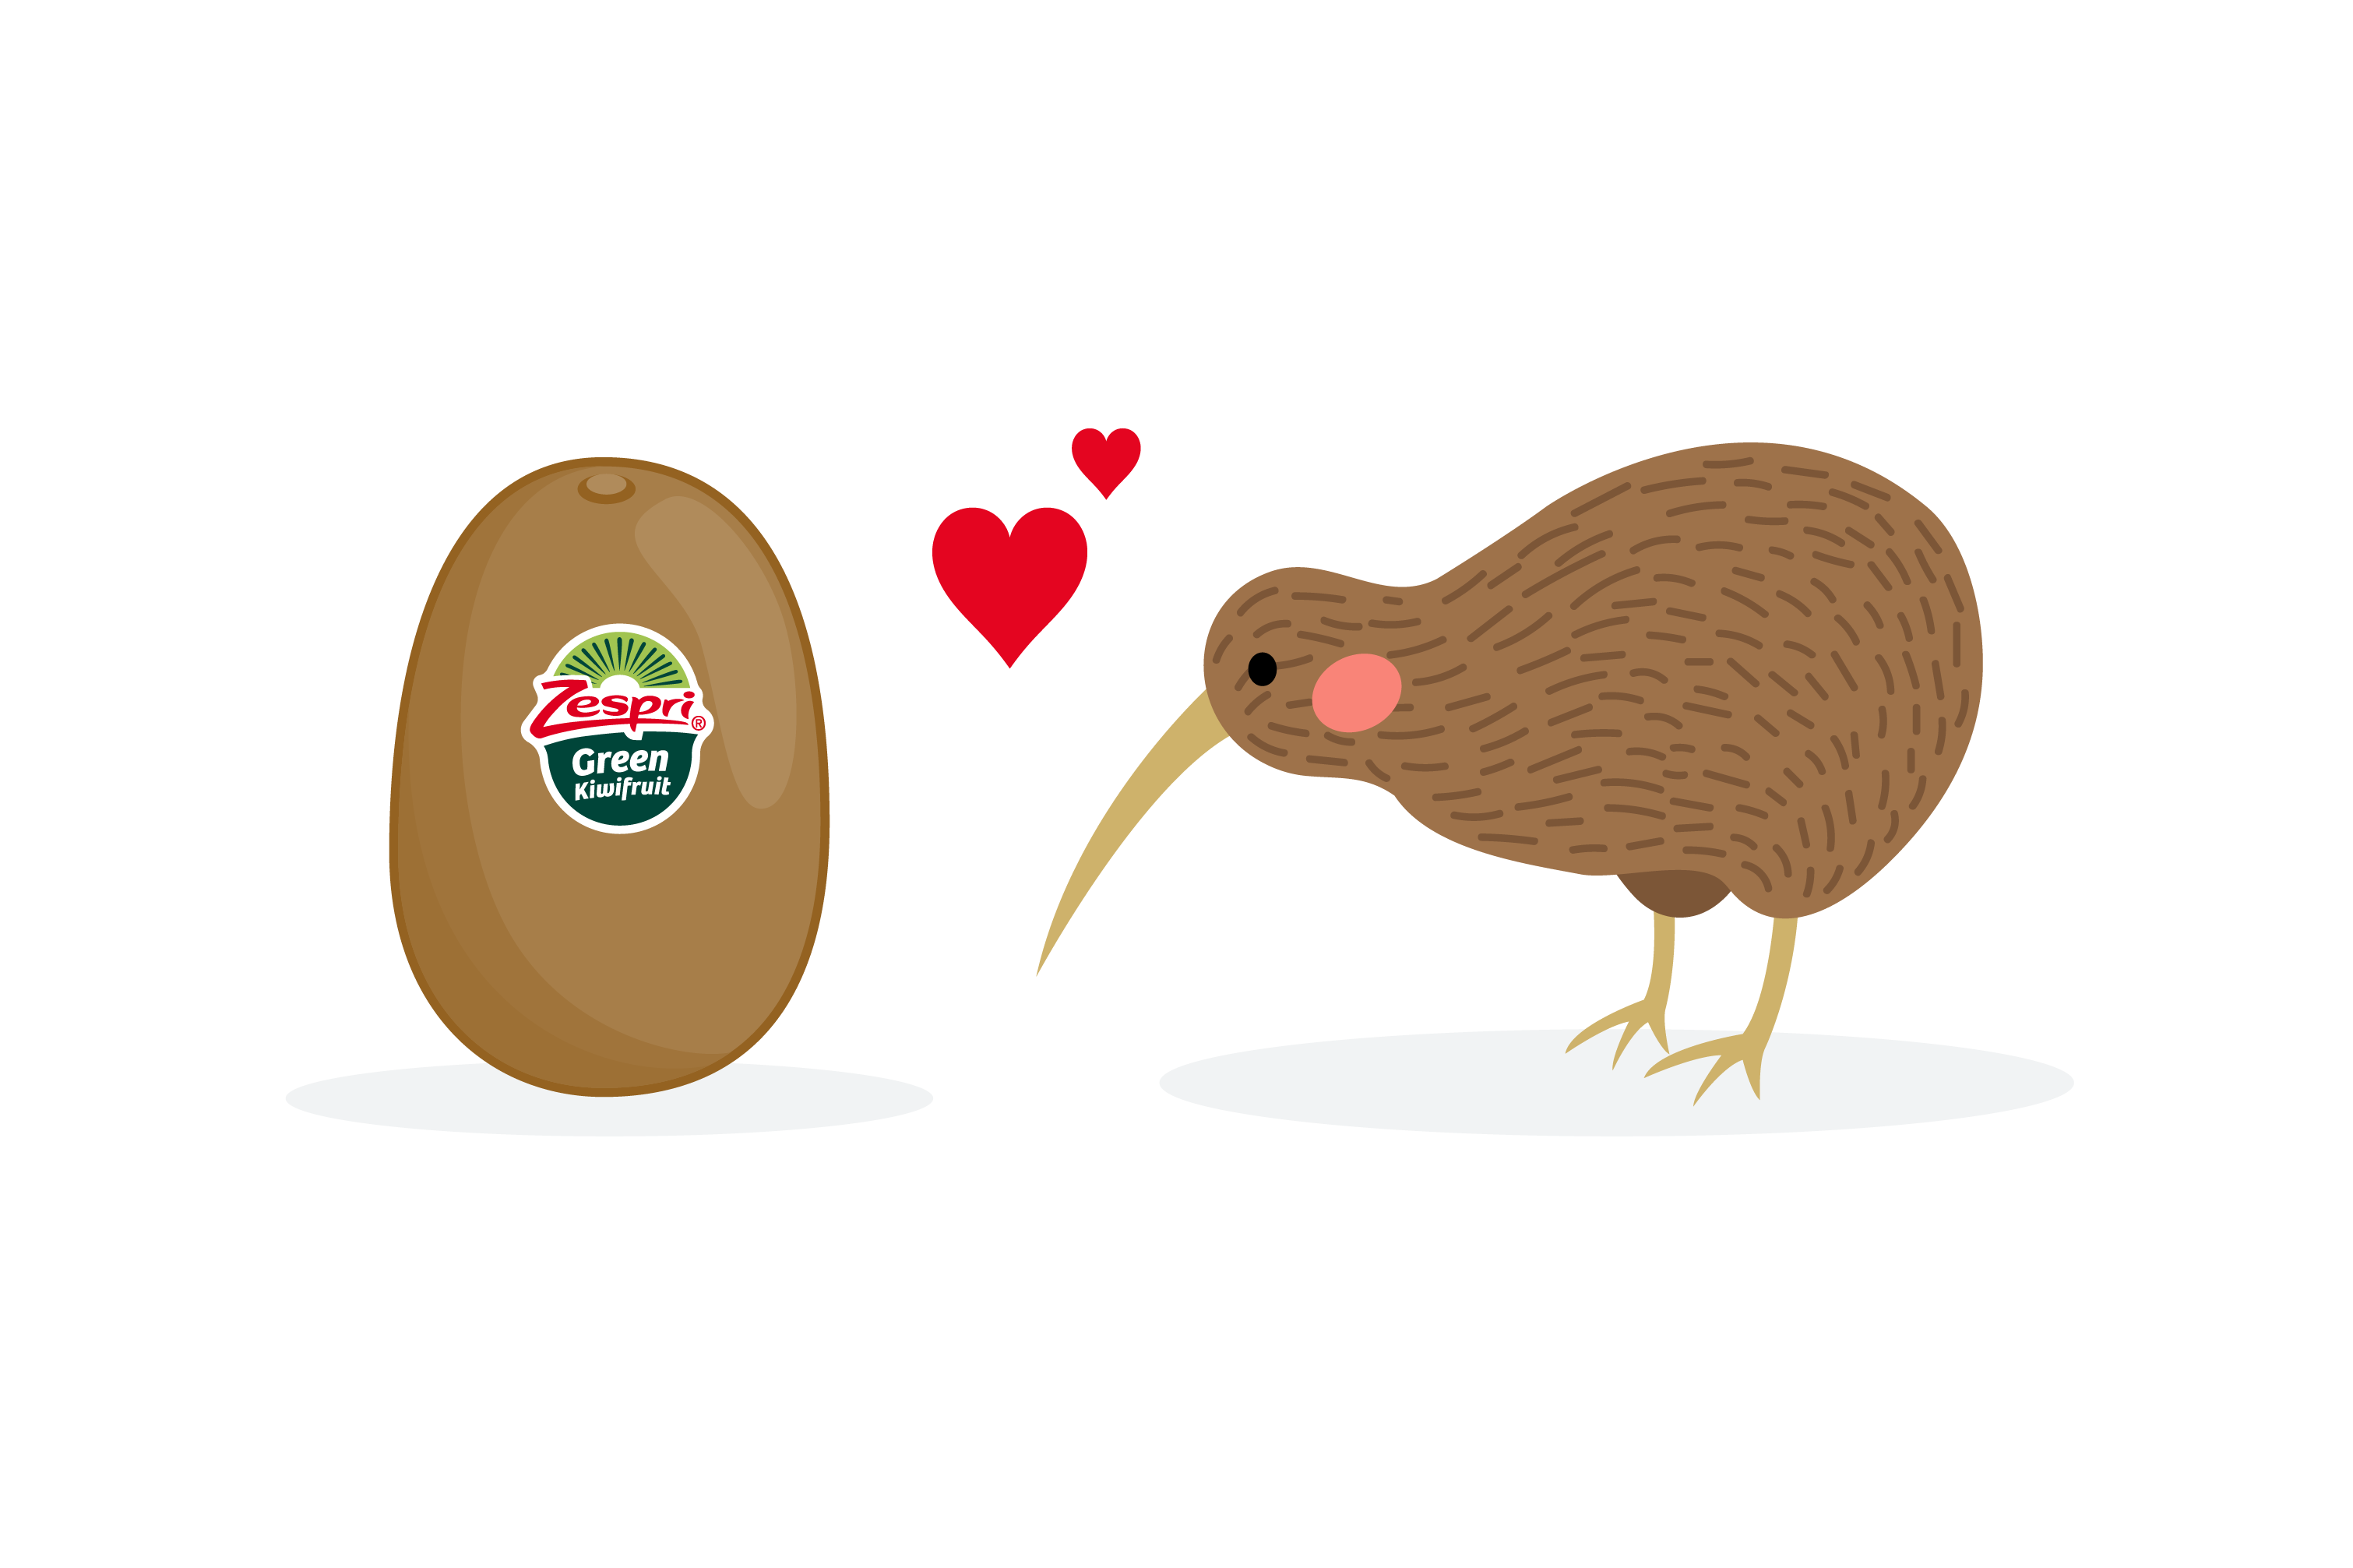 Fans of epic adventure stories full of discovery and excitement, listen up! Today kiwifruit is a regular feature of supermarket shelves, but it wasn't always that way.